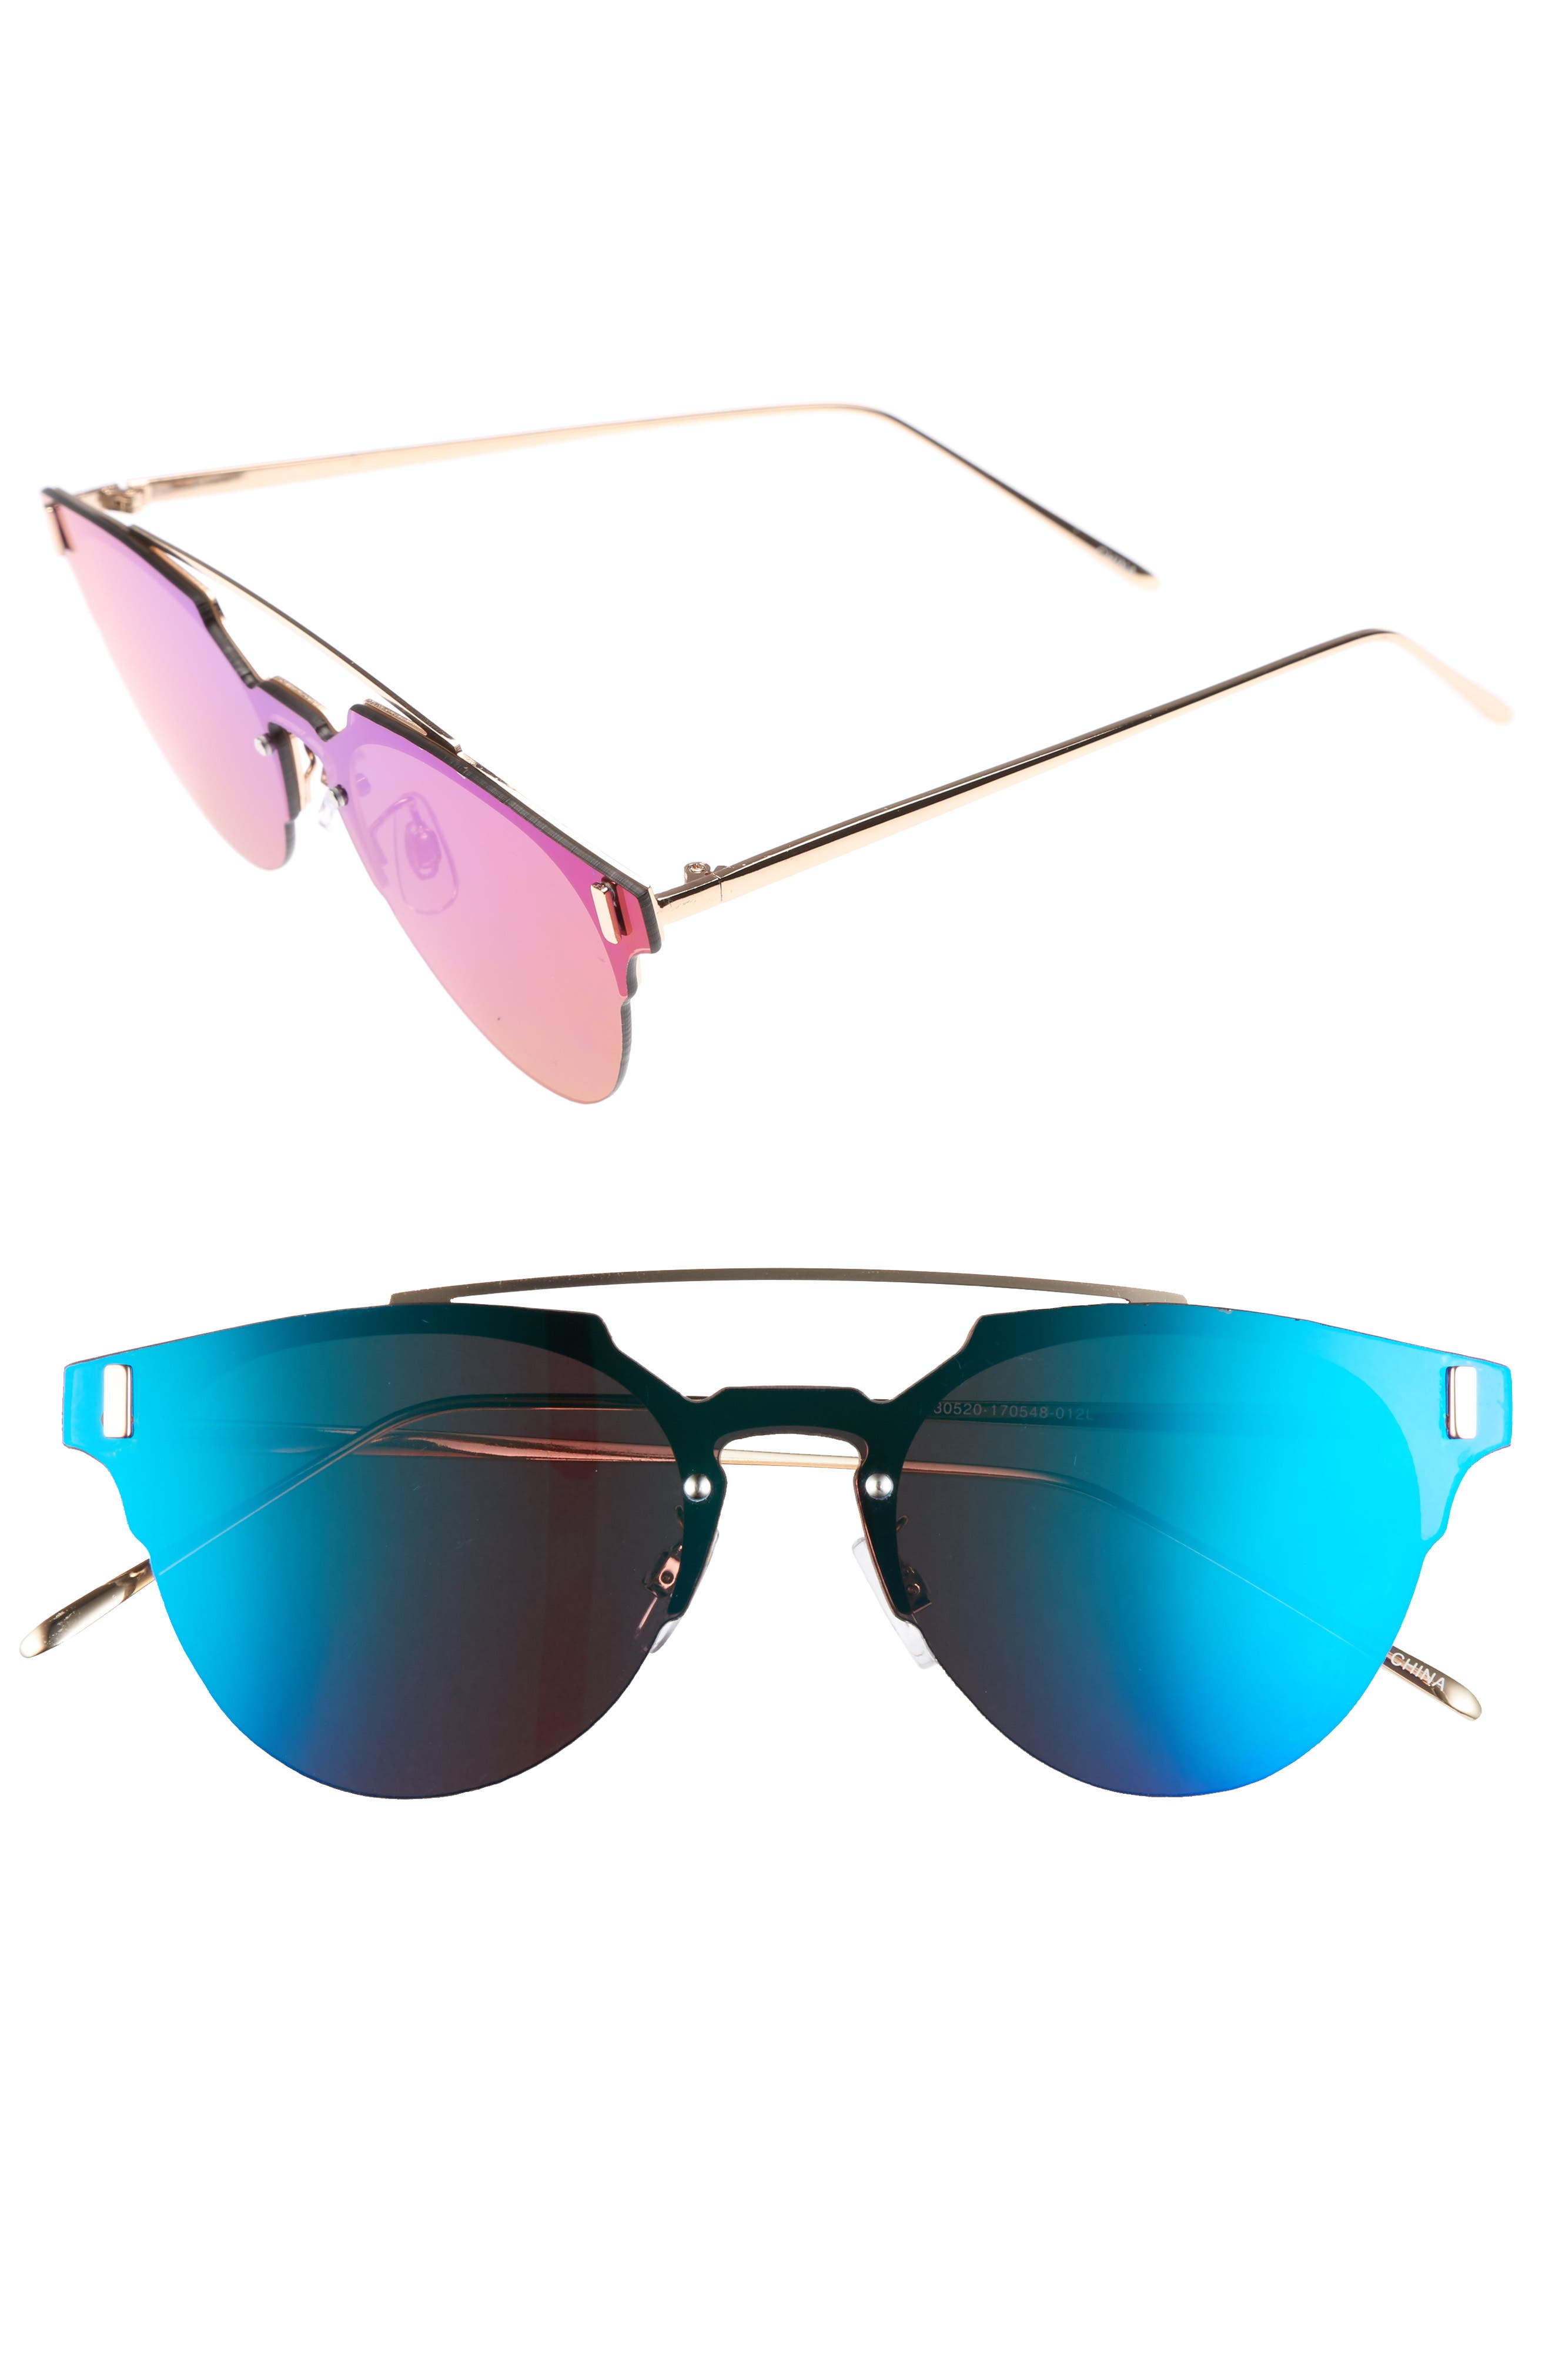 50mm Mirrored Round Sunglasses,                             Main thumbnail 1, color,                             400